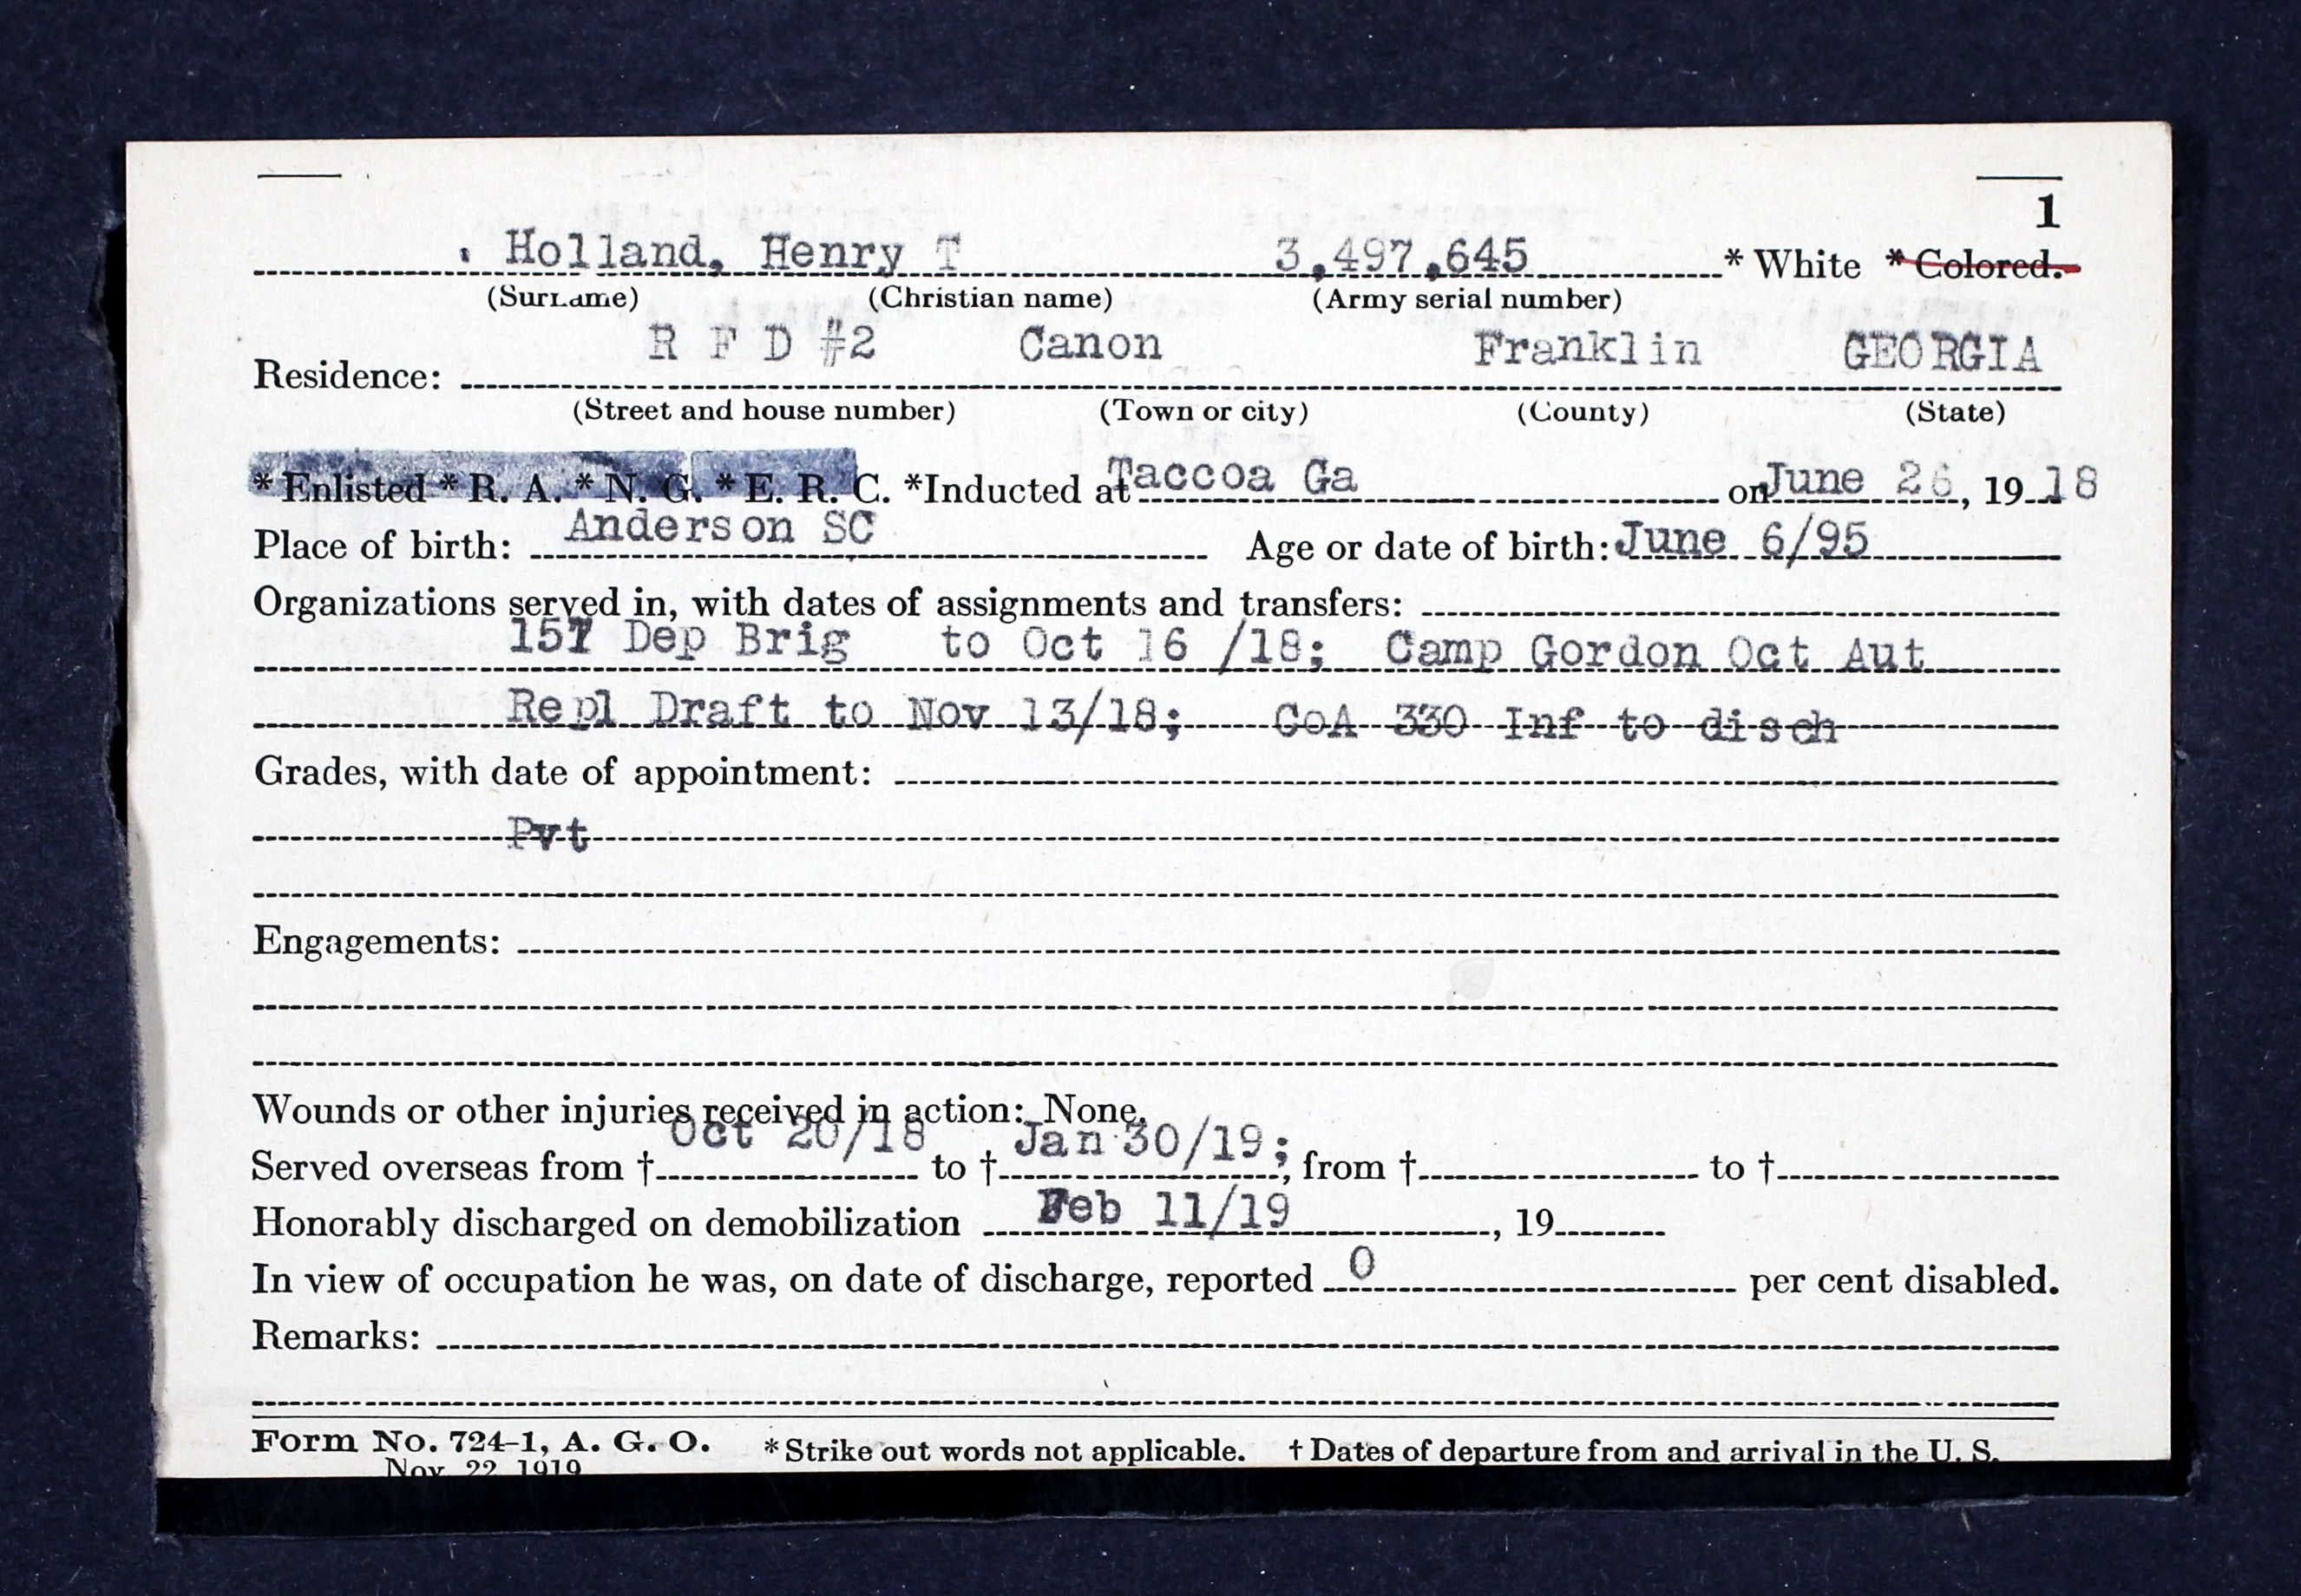 5bf2389076ca8 Henry T Holland WWI Service Card